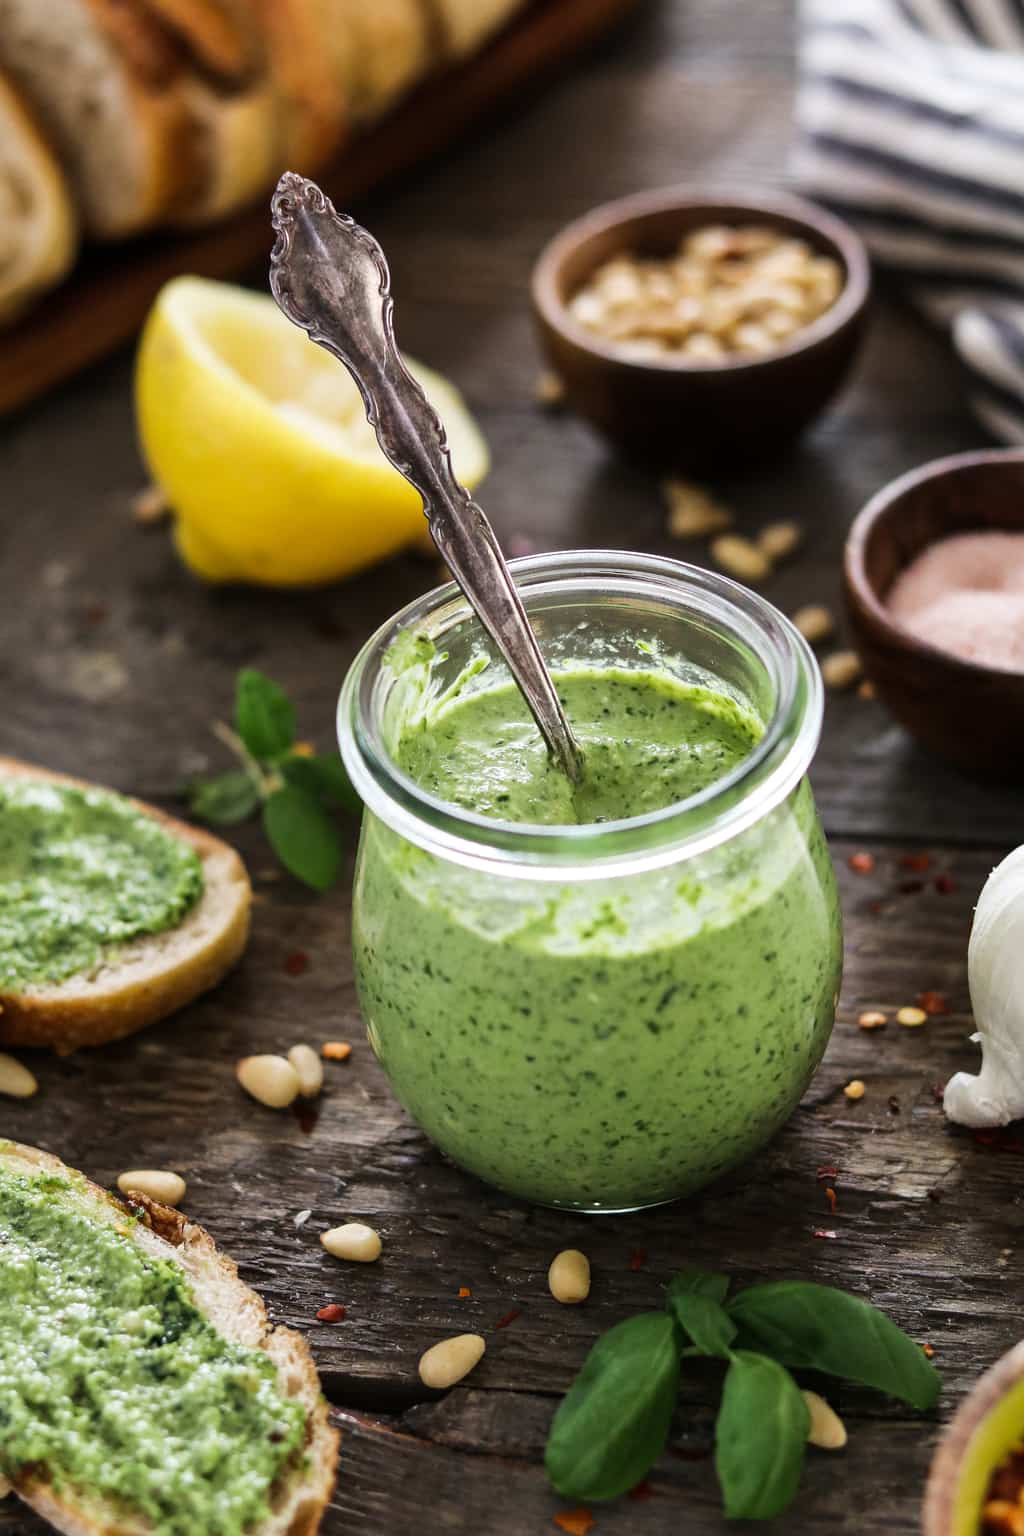 Are you up to your ears in garden zucchini yet? How about a fresh-tasting Zucchini Pesto to help you get through it? It's quick, easy, oil-free, vegan and delicious!